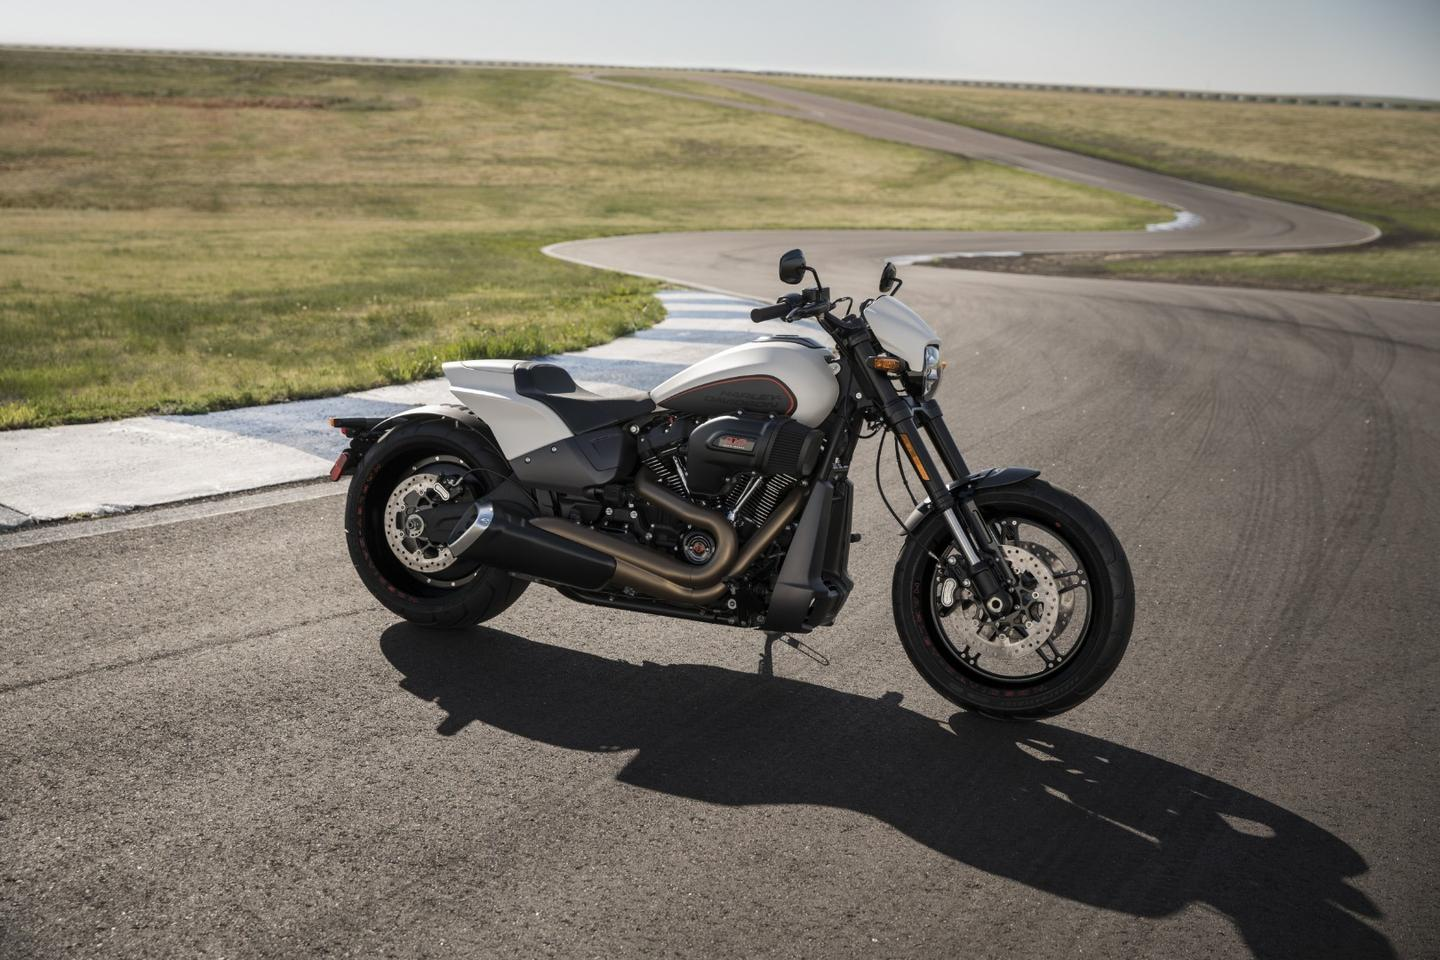 2019 FXDR 114: coming soon to a racetrack near you?